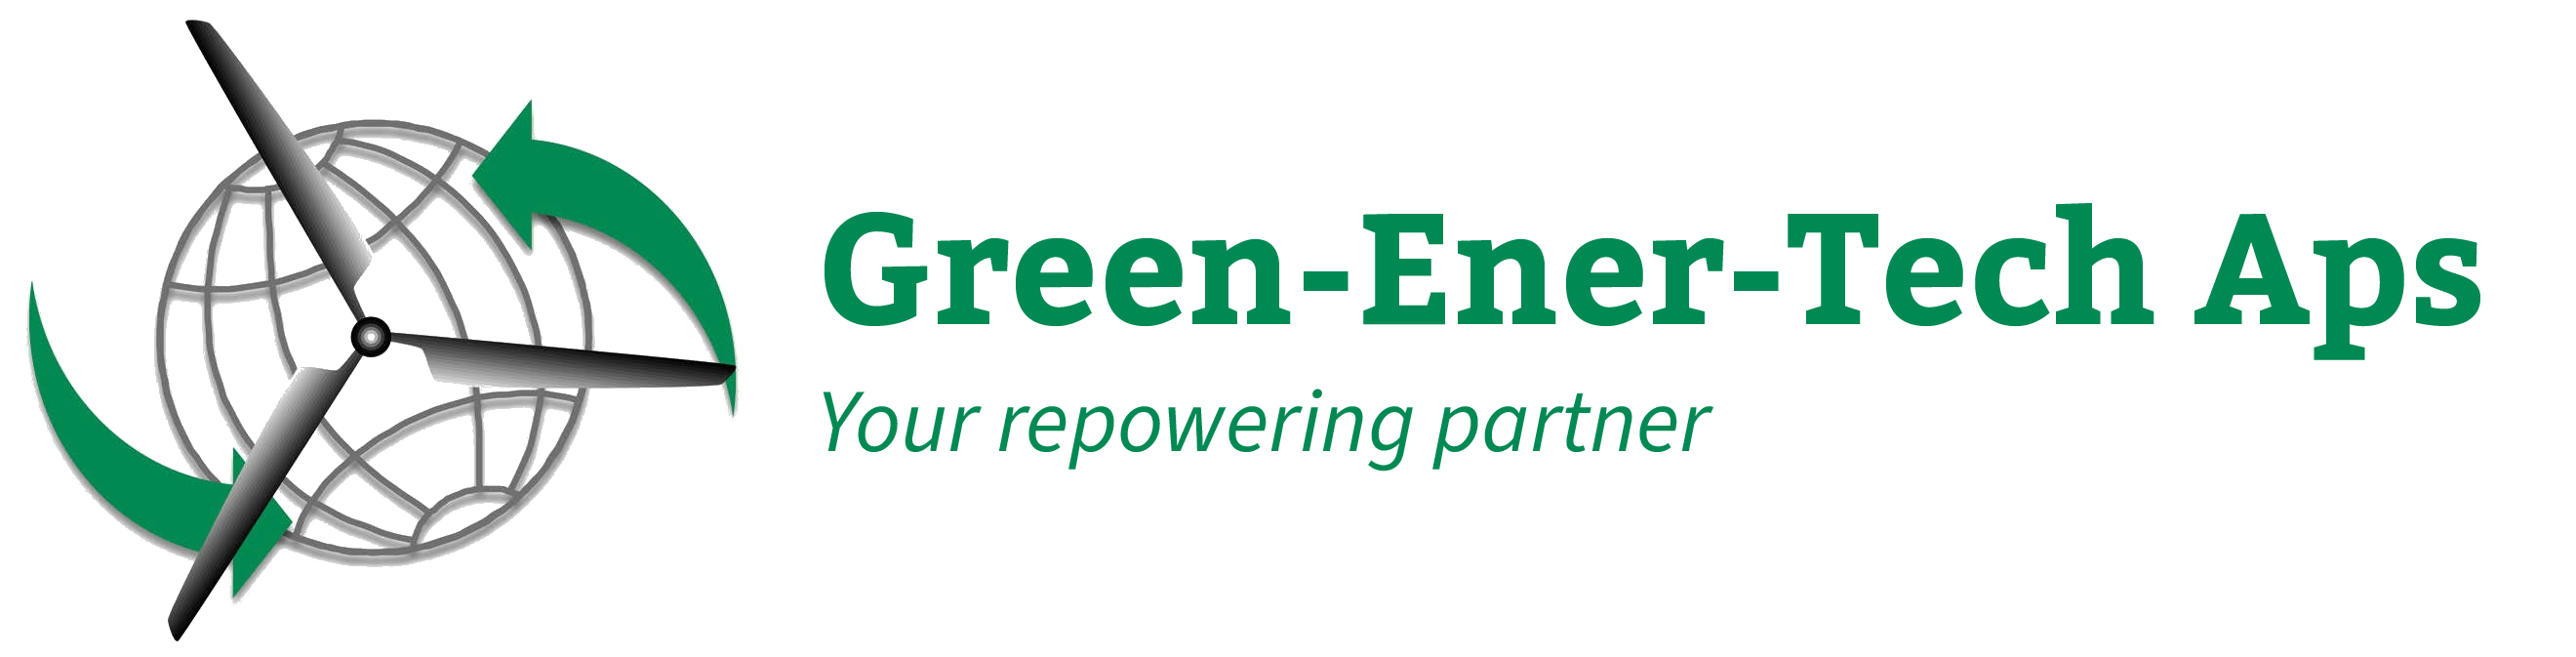 Green-Ener-Tech ApS